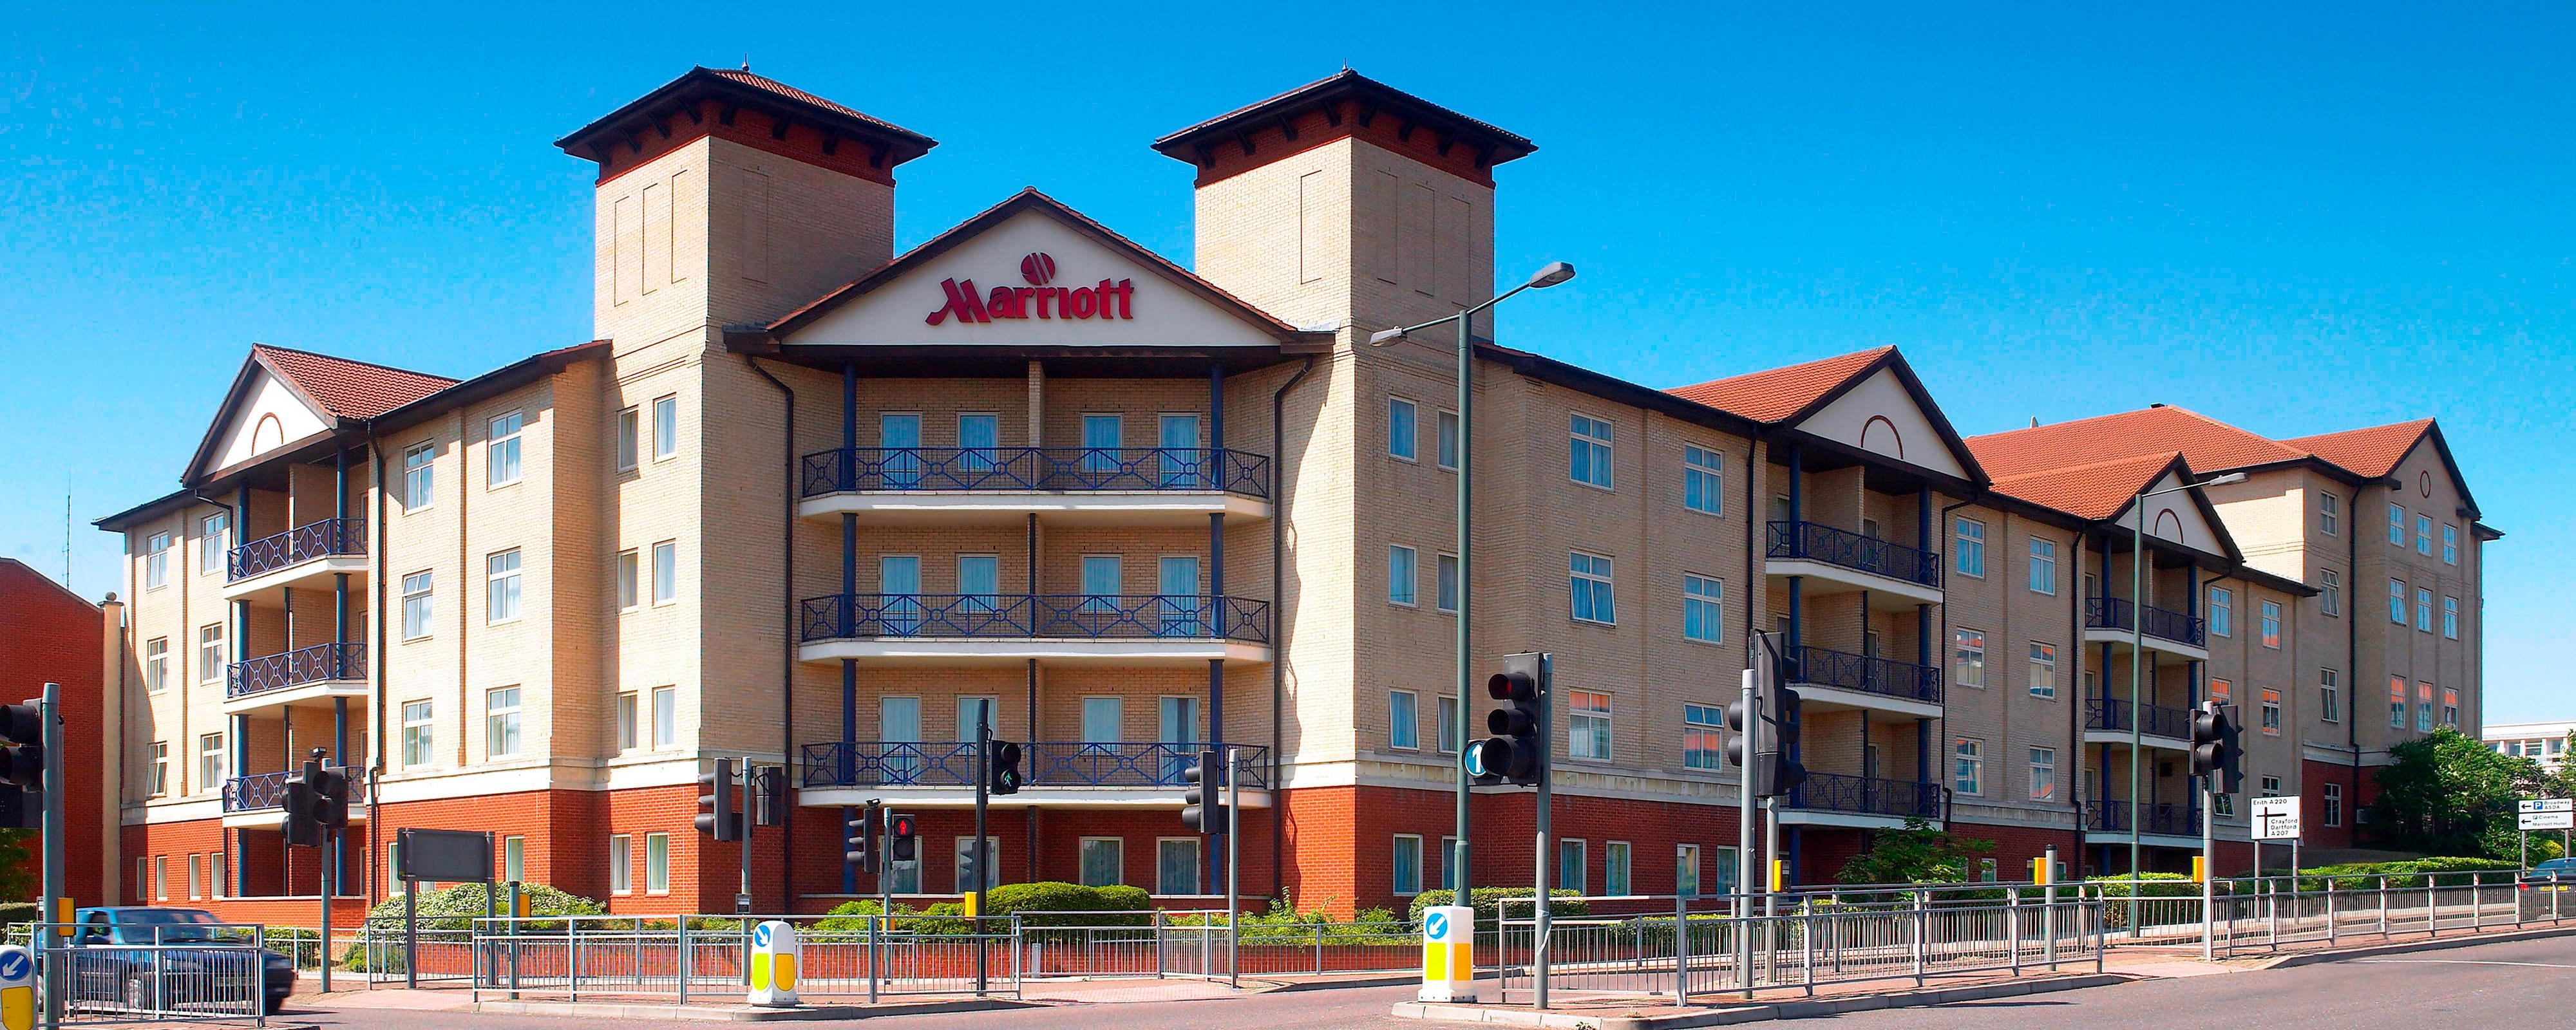 Bed And Breakfast Dartford Hotel In Dartford Bexleyheath Bexleyheath Marriott Hotel